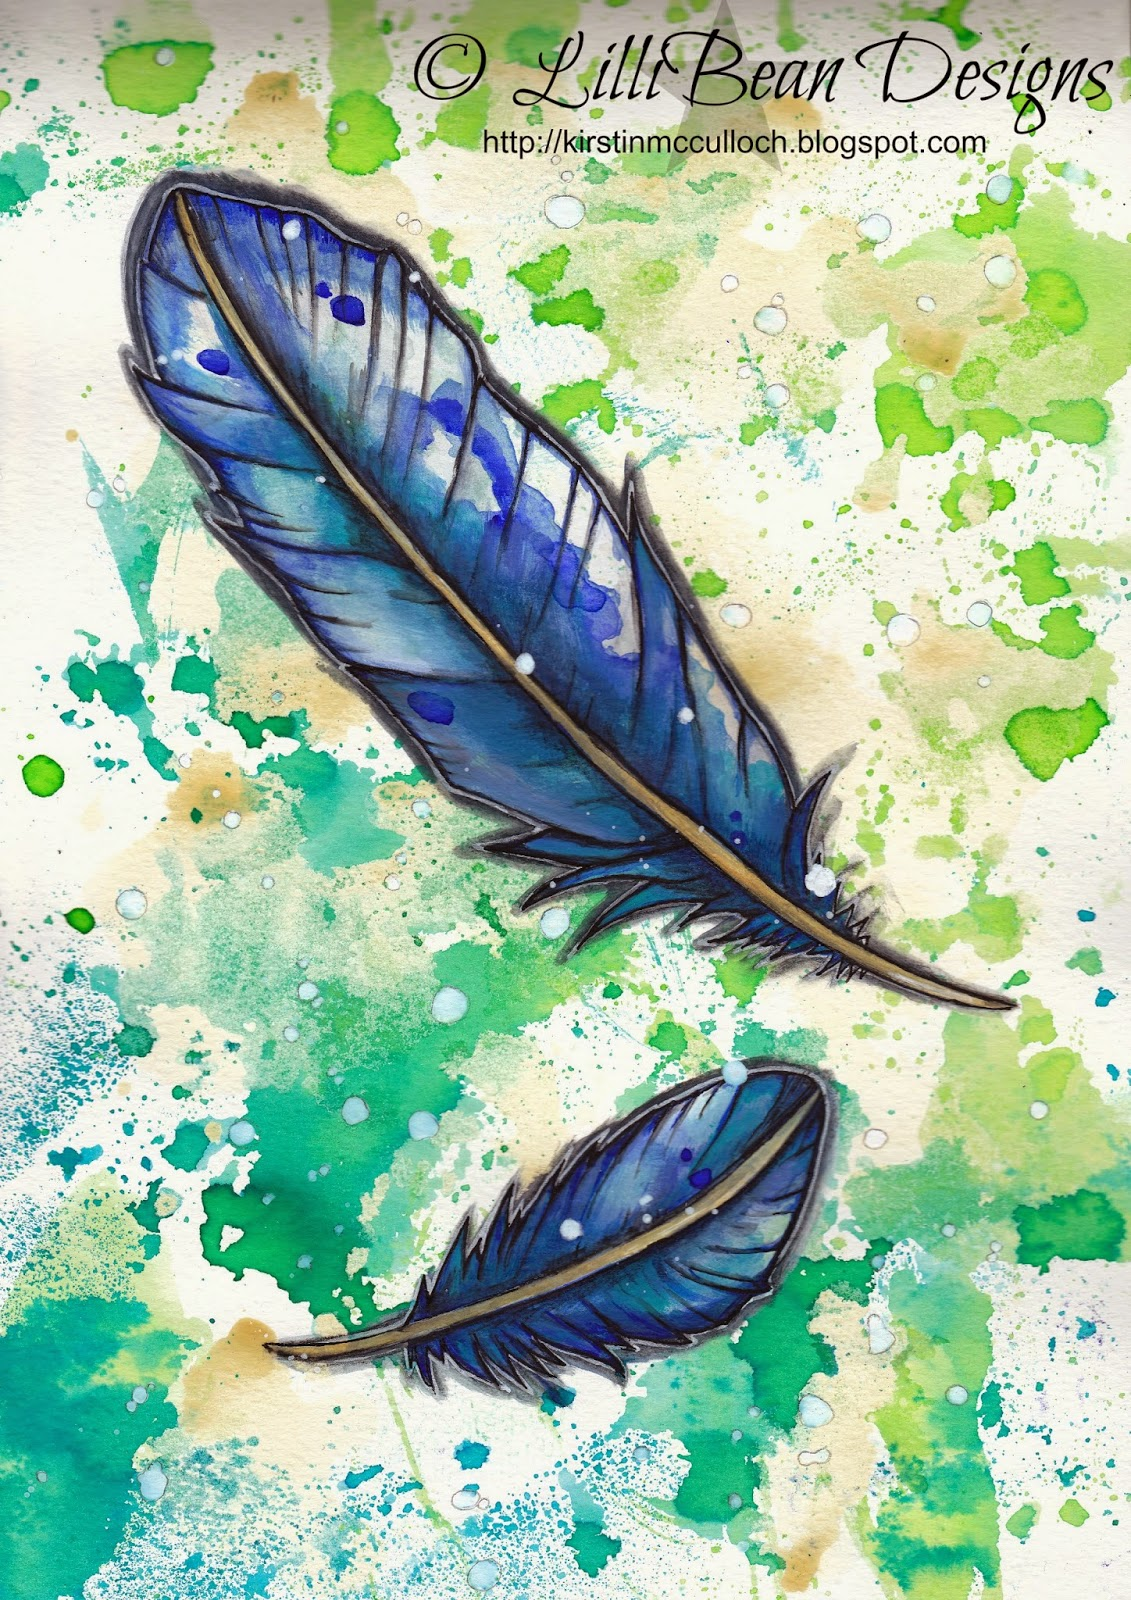 BLUE FEATHERS - journal page painting. © kirstin mcculloch LilliBean Designs http://kirstinmcculloch.blogspot.com.au